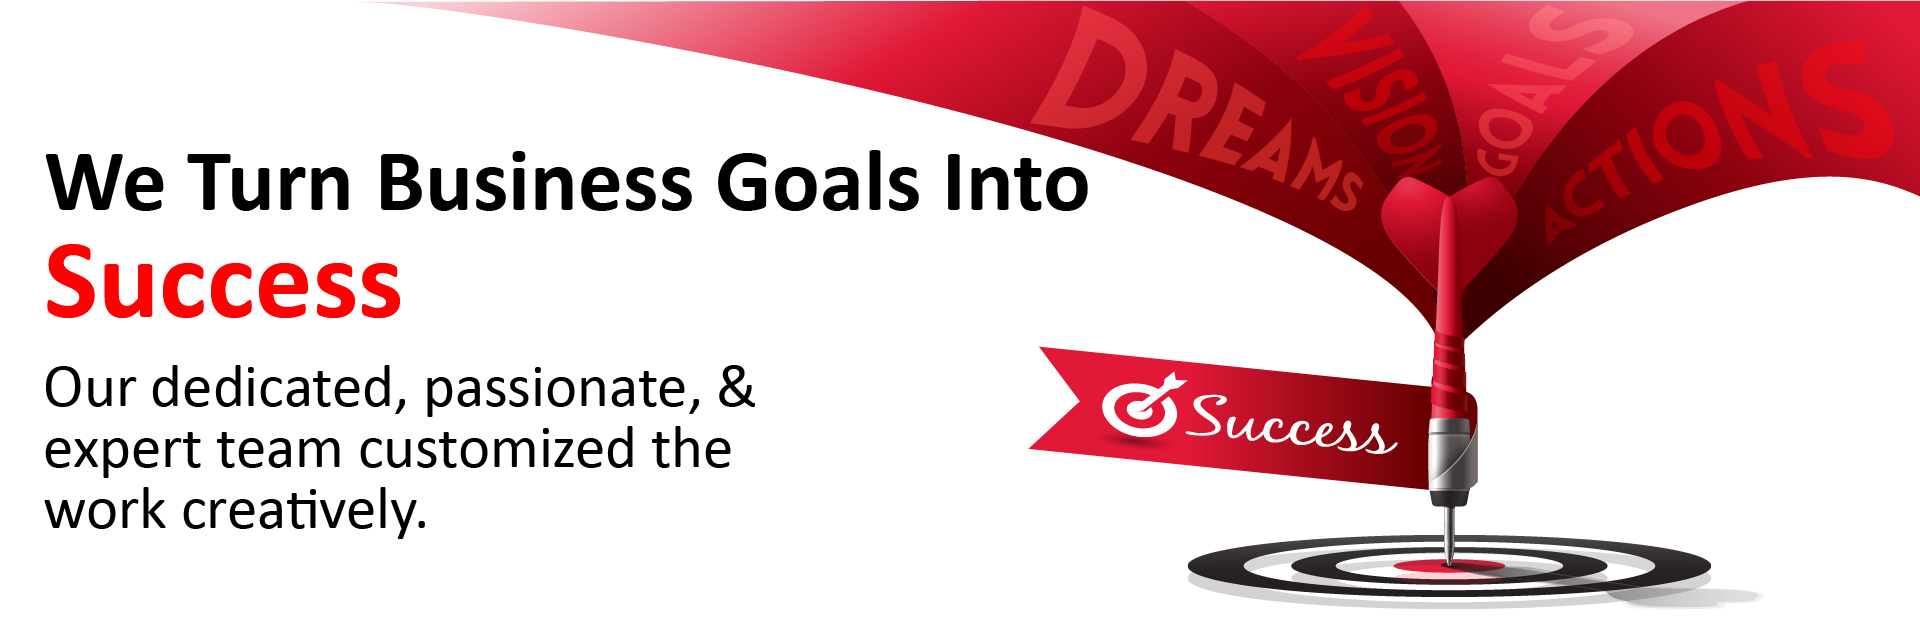 Turn Business Goal Into Success